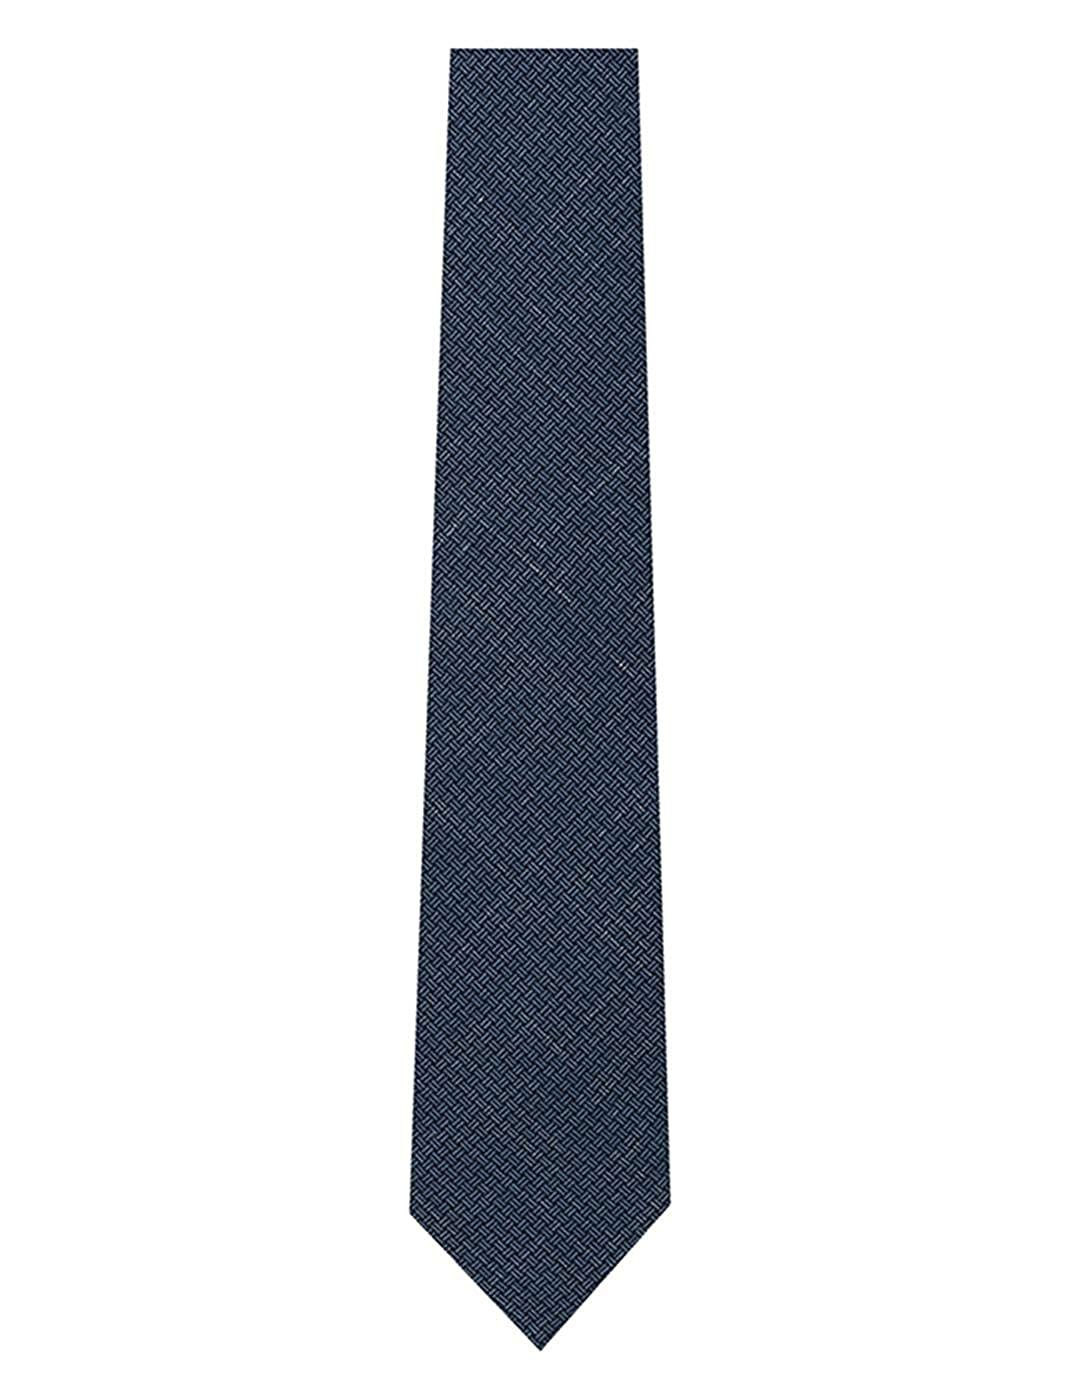 Corbata Hacket Wardrobe Tie 6 Azul Unica Azul: Amazon.es: Zapatos ...